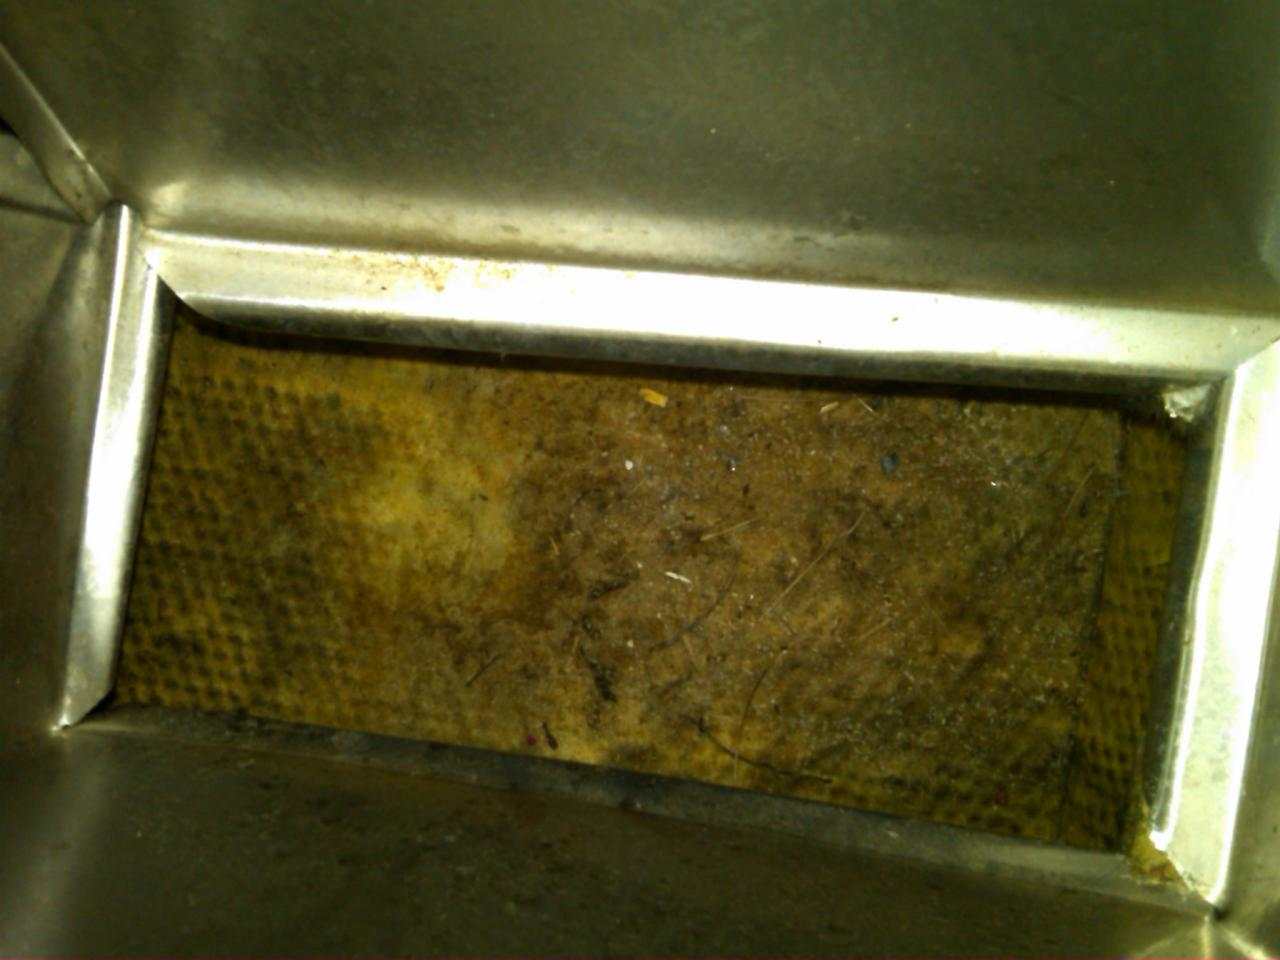 This is what the manufactured home duct looked like before the mold growth.